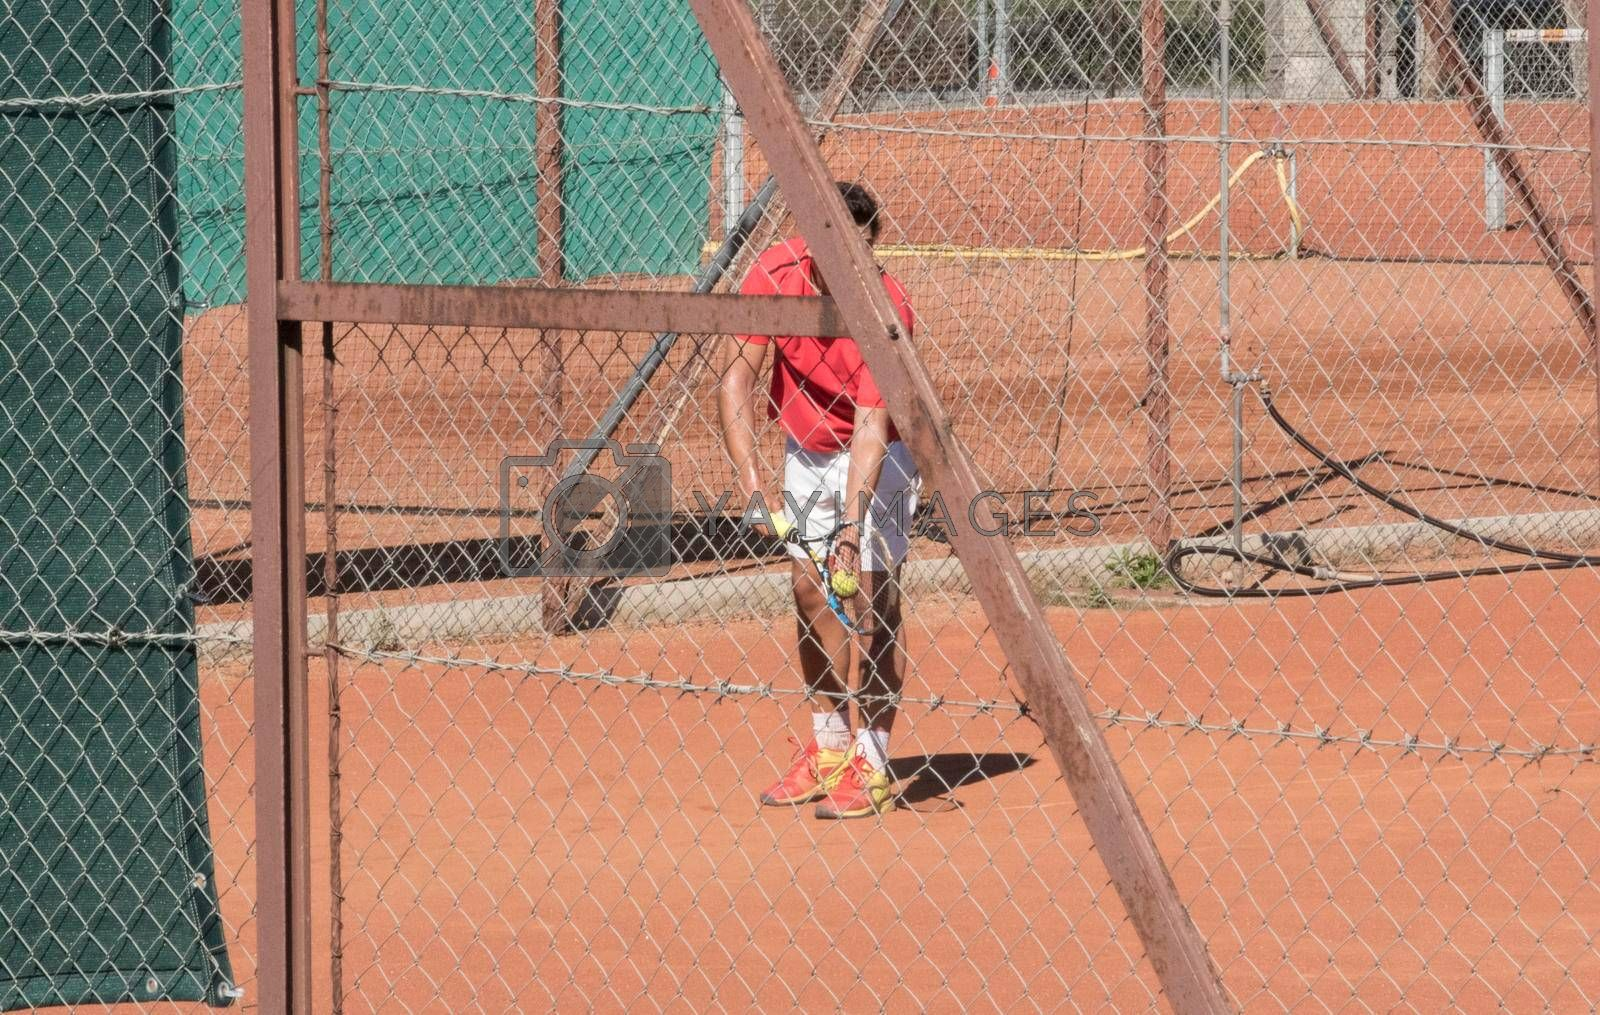 tennis game on a tennis court, game with racket and ball